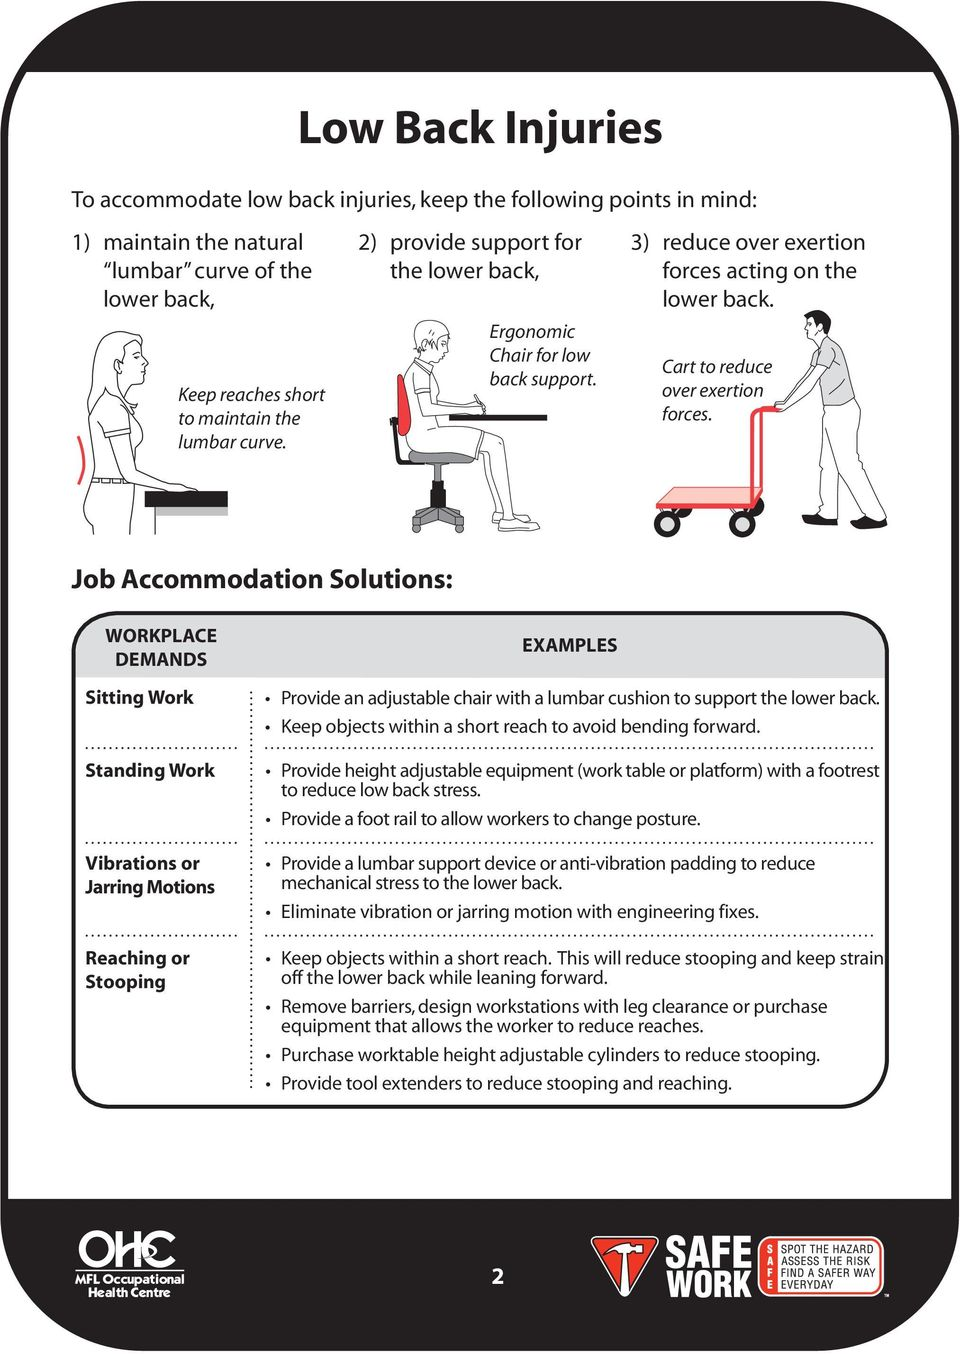 Job Accommodation Solutions: WORKPLACE Sitting Work Standing Work Vibrations or Jarring Motions Reaching or Stooping EXAMPLES Provide an adjustable chair with a lumbar cushion to support the lower